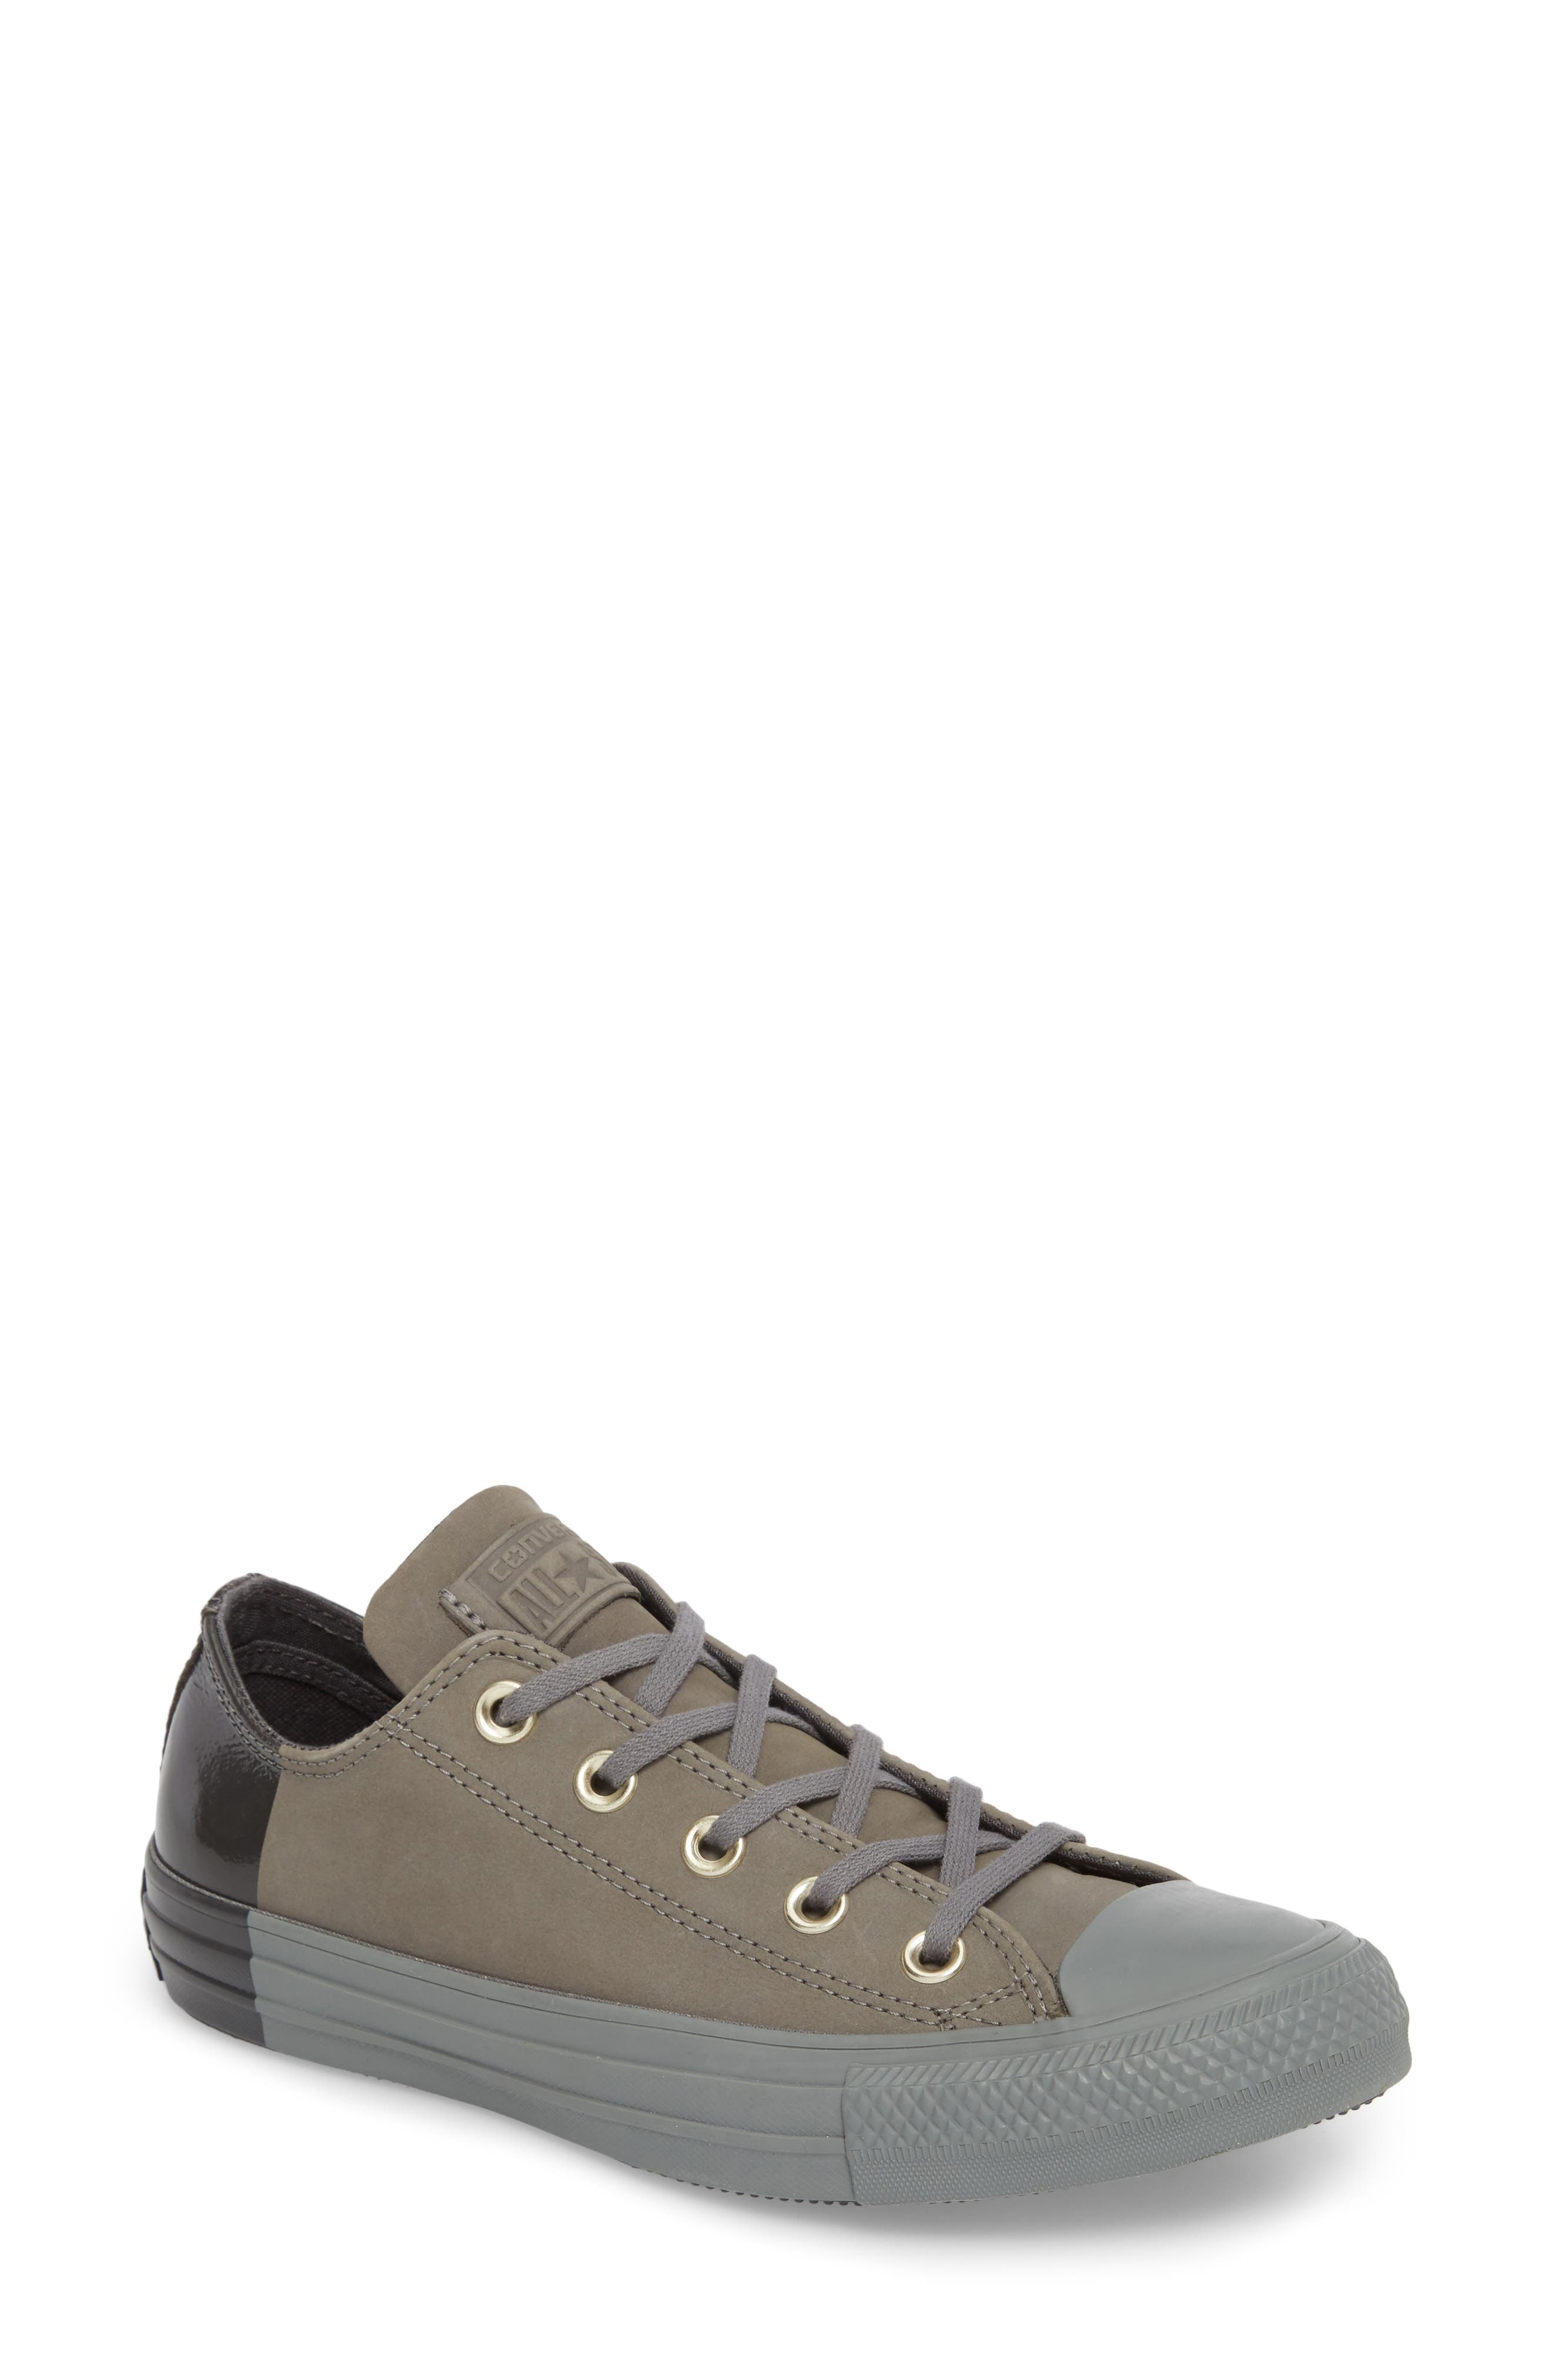 All Star<sup>®</sup> Nubuck OX Low Top Sneaker,                         Main,                         color, 028